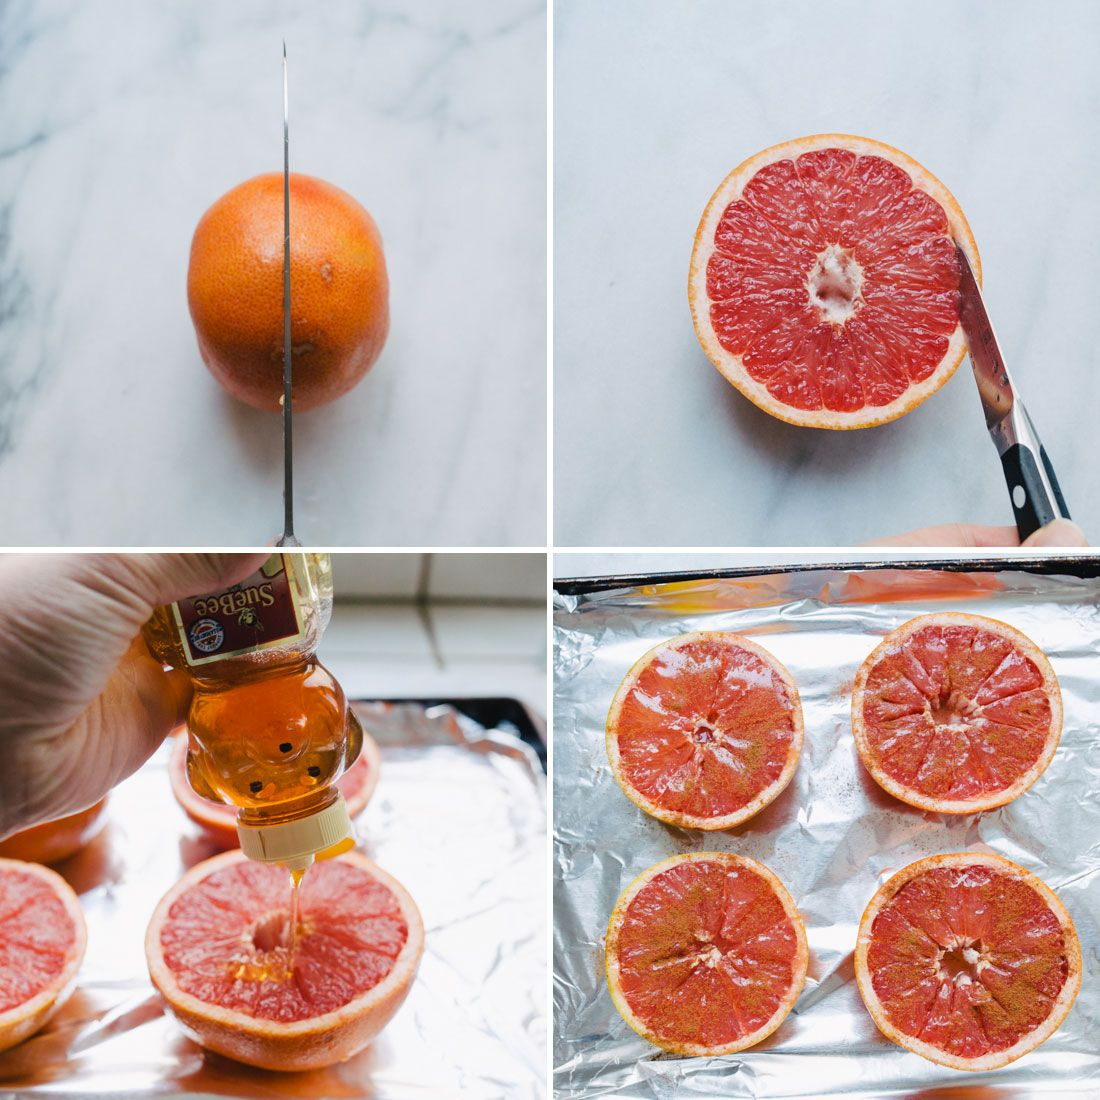 After you halve a grapefruit, snip the rind so that the slices will come out super easy. Top with honey + bake for a warm version of this classic breakfast item.